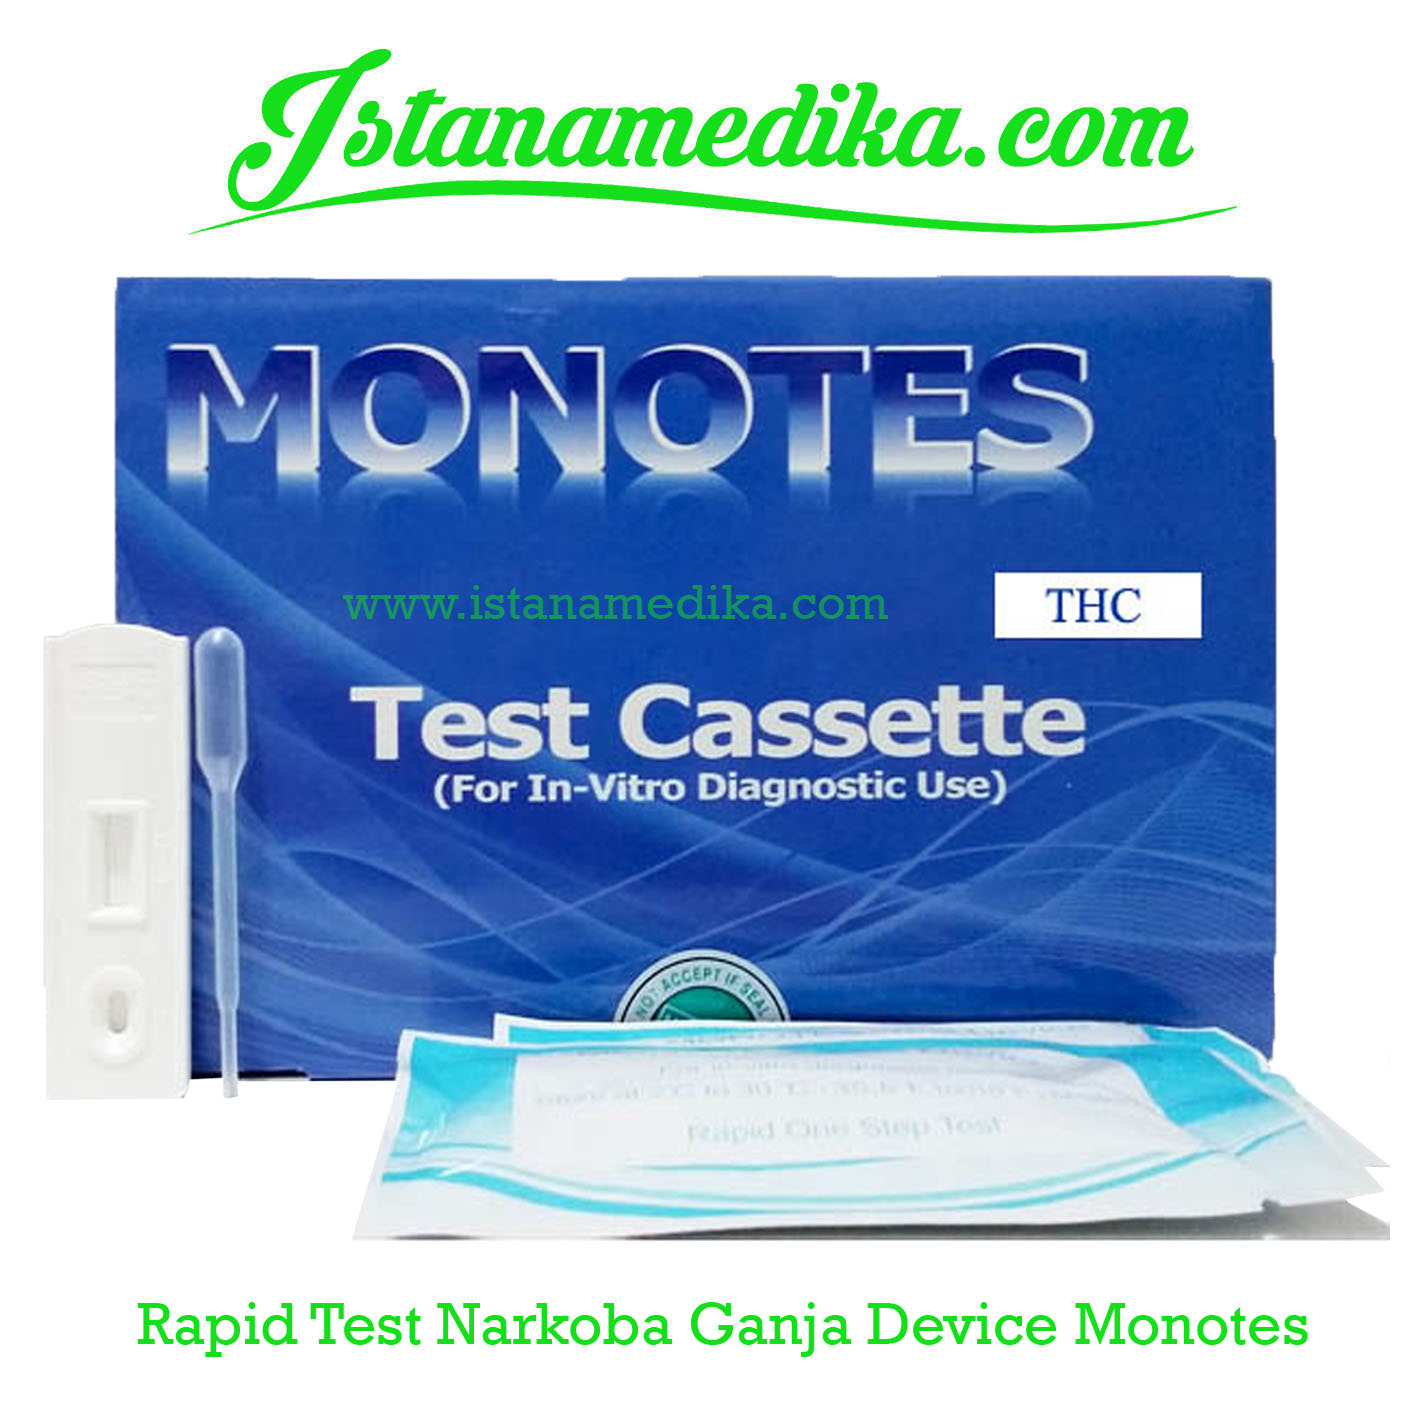 Rapid Test Ganja Device Monotes